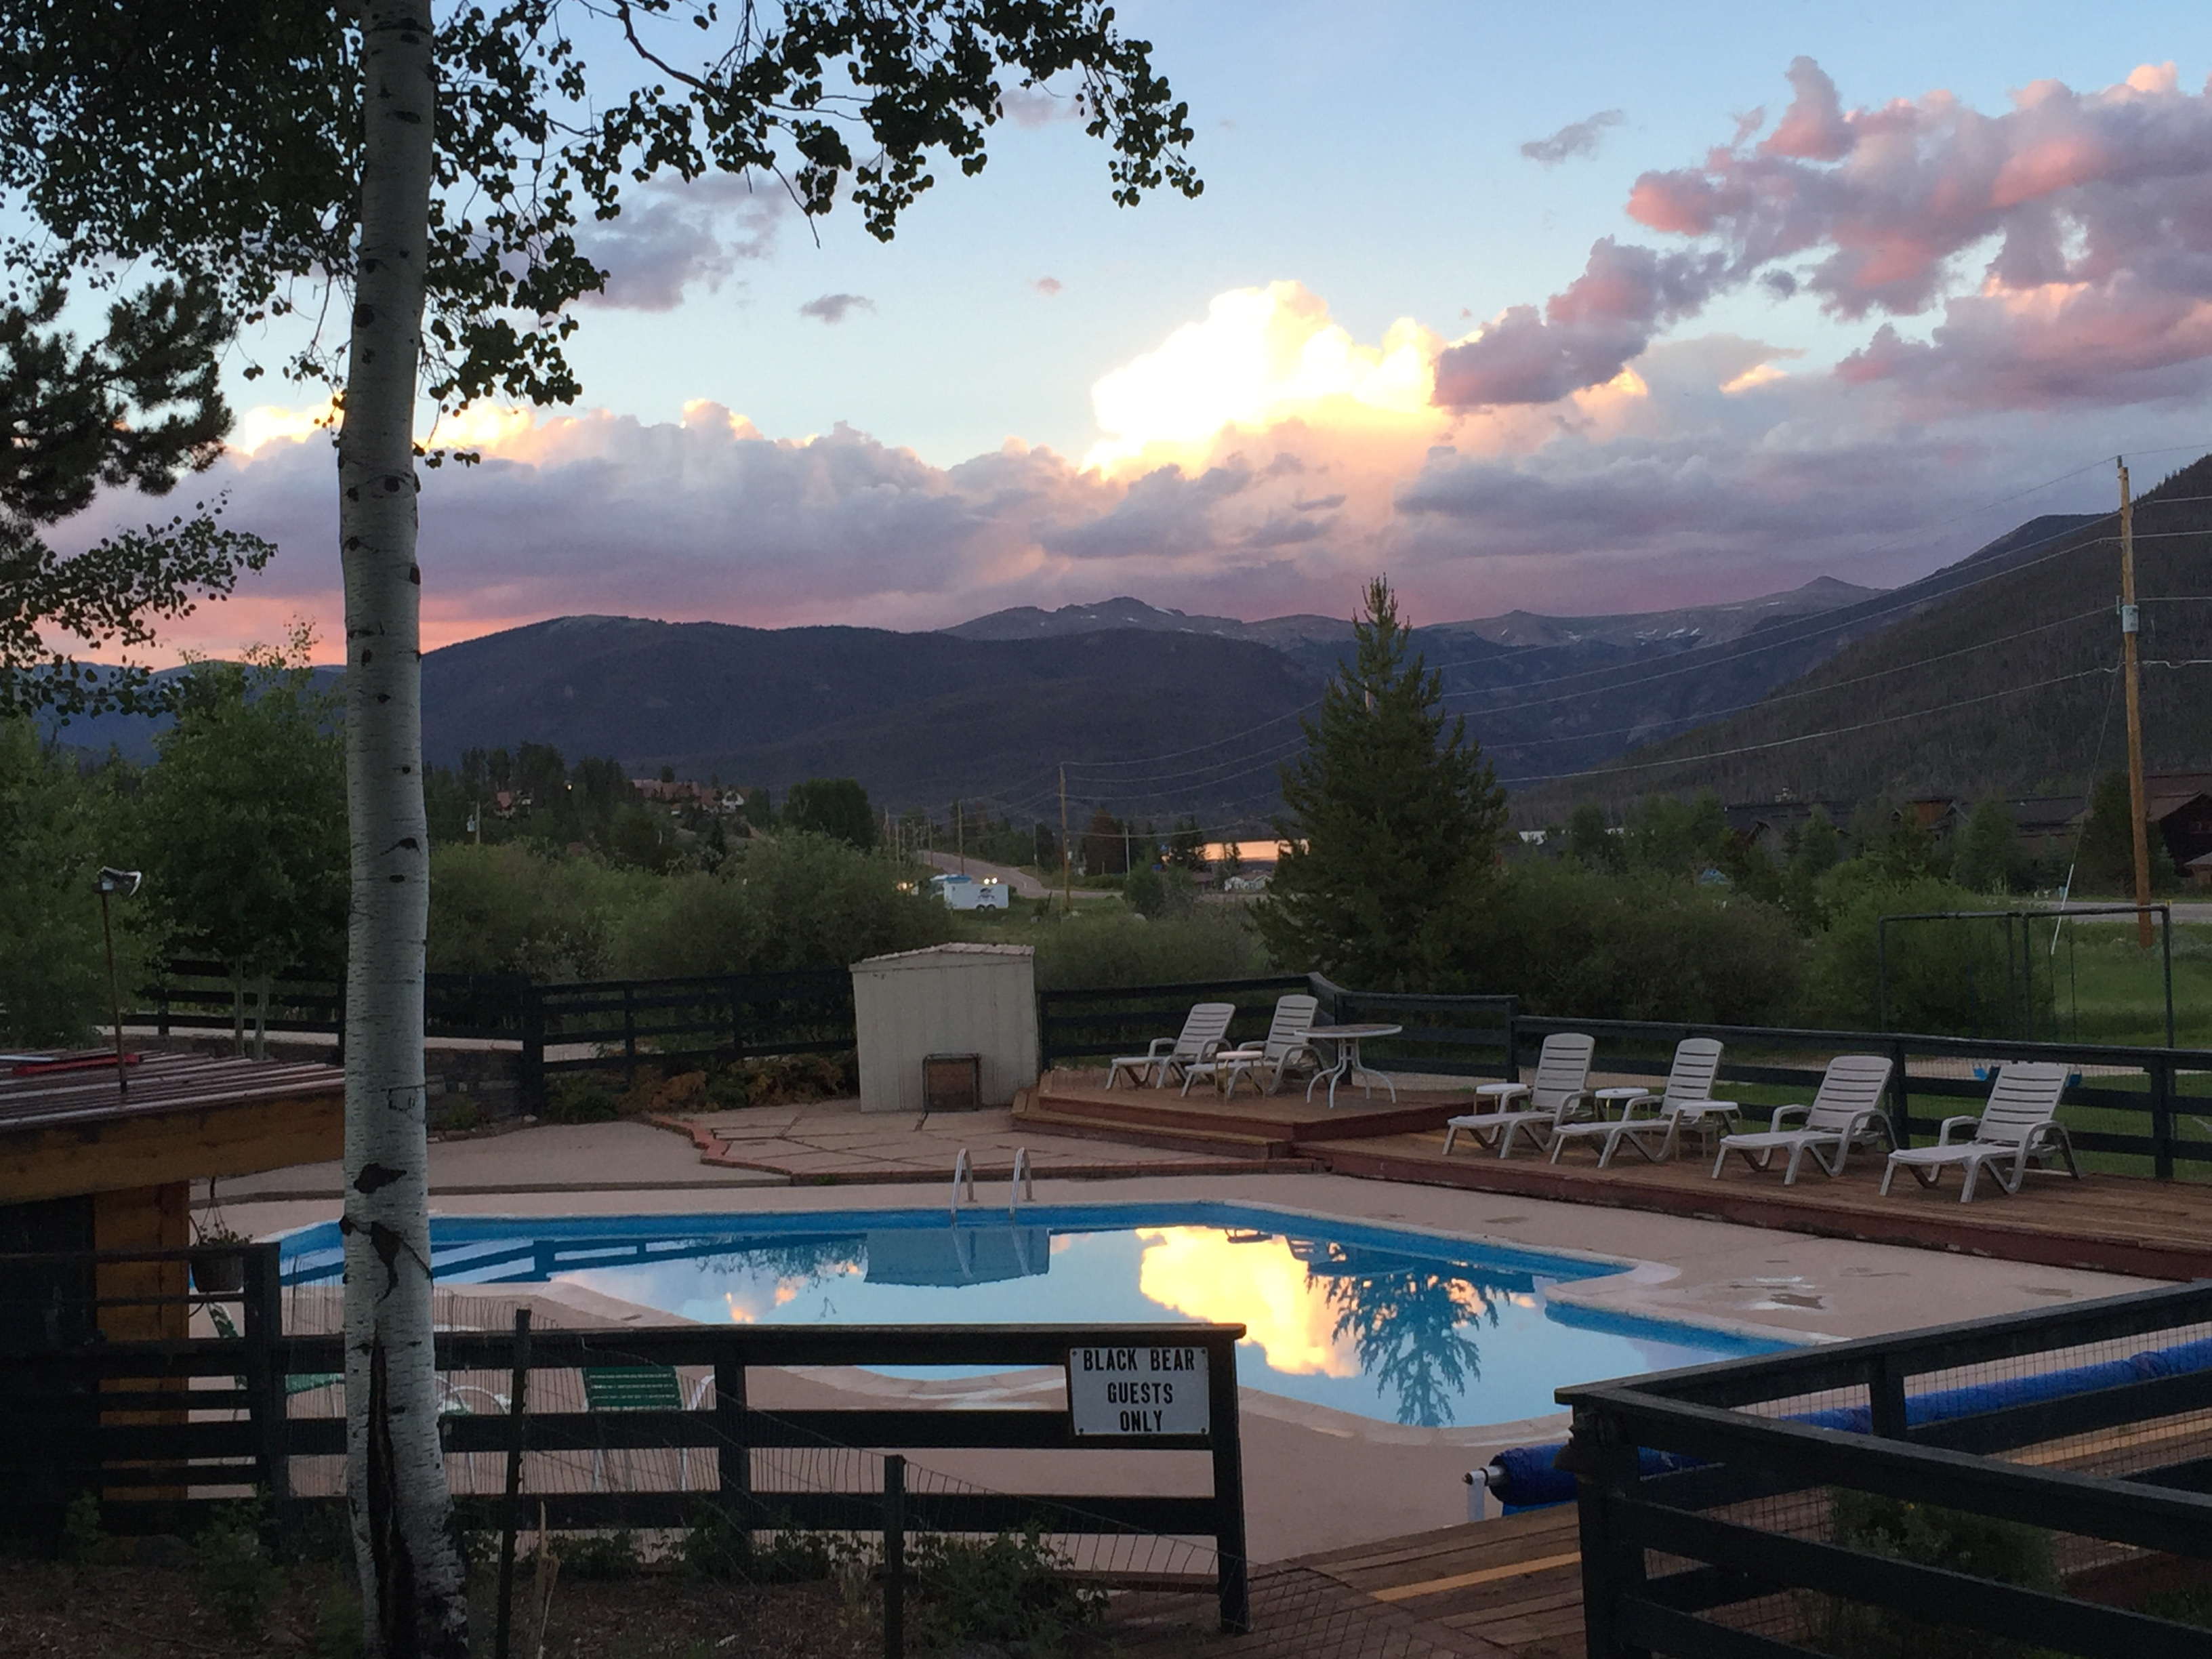 Outdoor heated pool at sunset